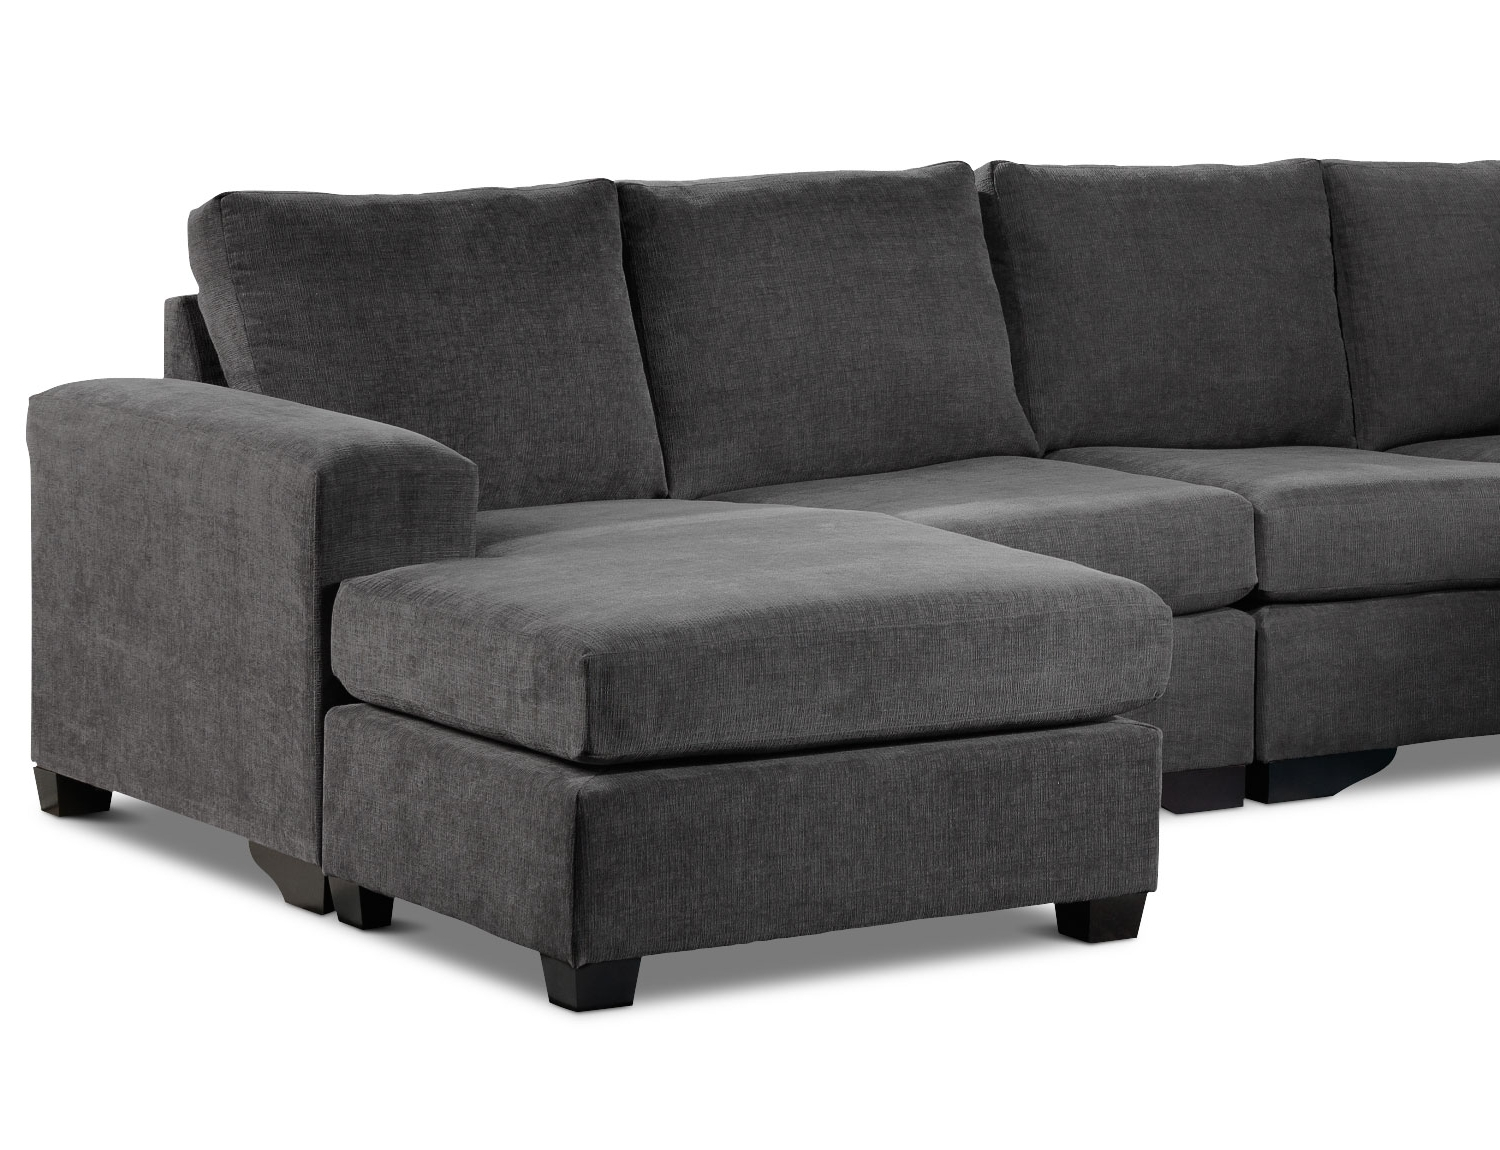 Mobilia Sectional Sofas Within Trendy Danielle 3 Piece Sectional With Right Facing Corner Wedge – Grey (View 9 of 15)